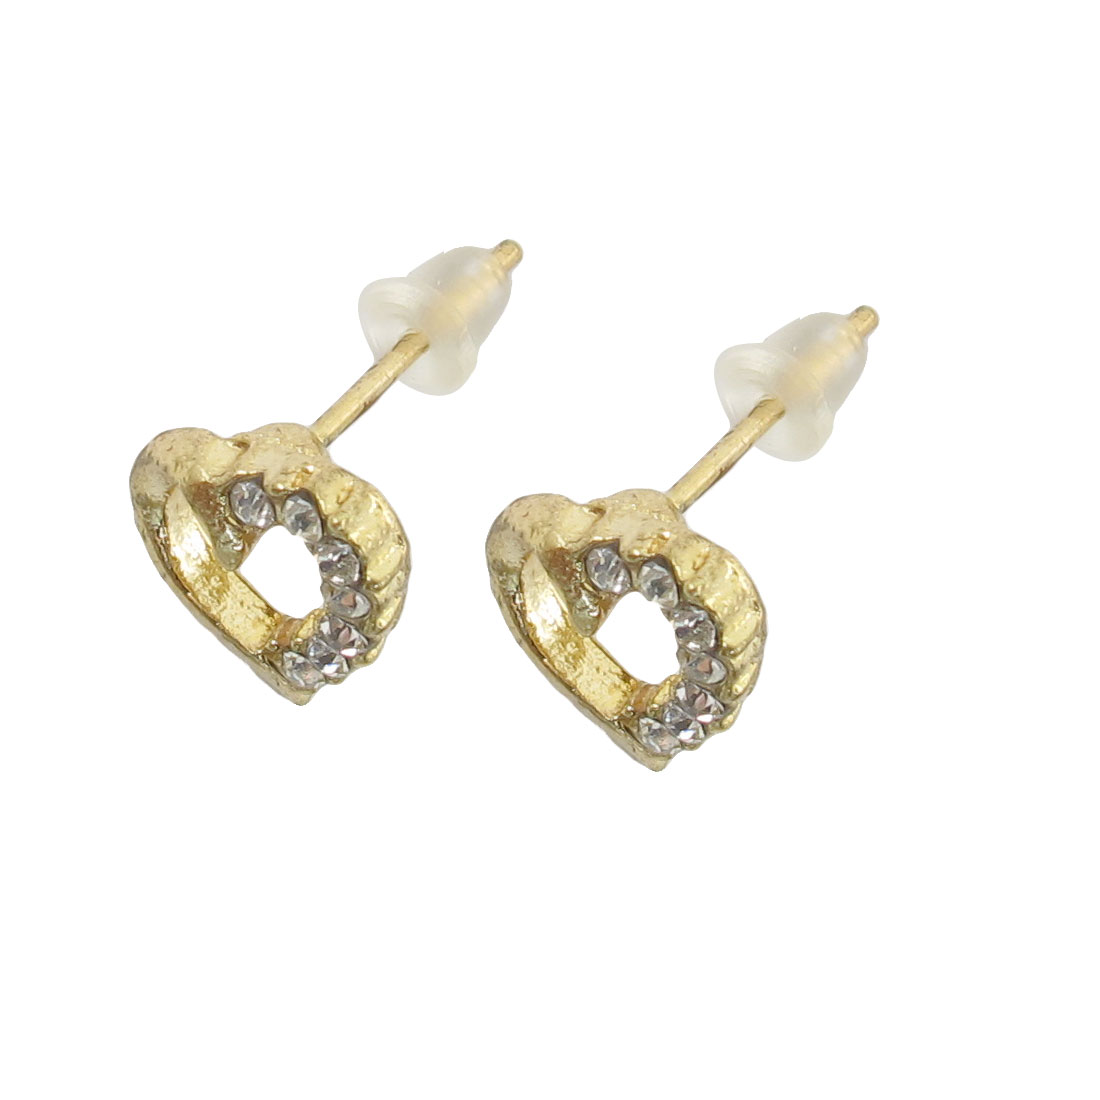 Pair Ladies Golden Tone Heart Accent Faux Crystal Inlaid Stud Earrings